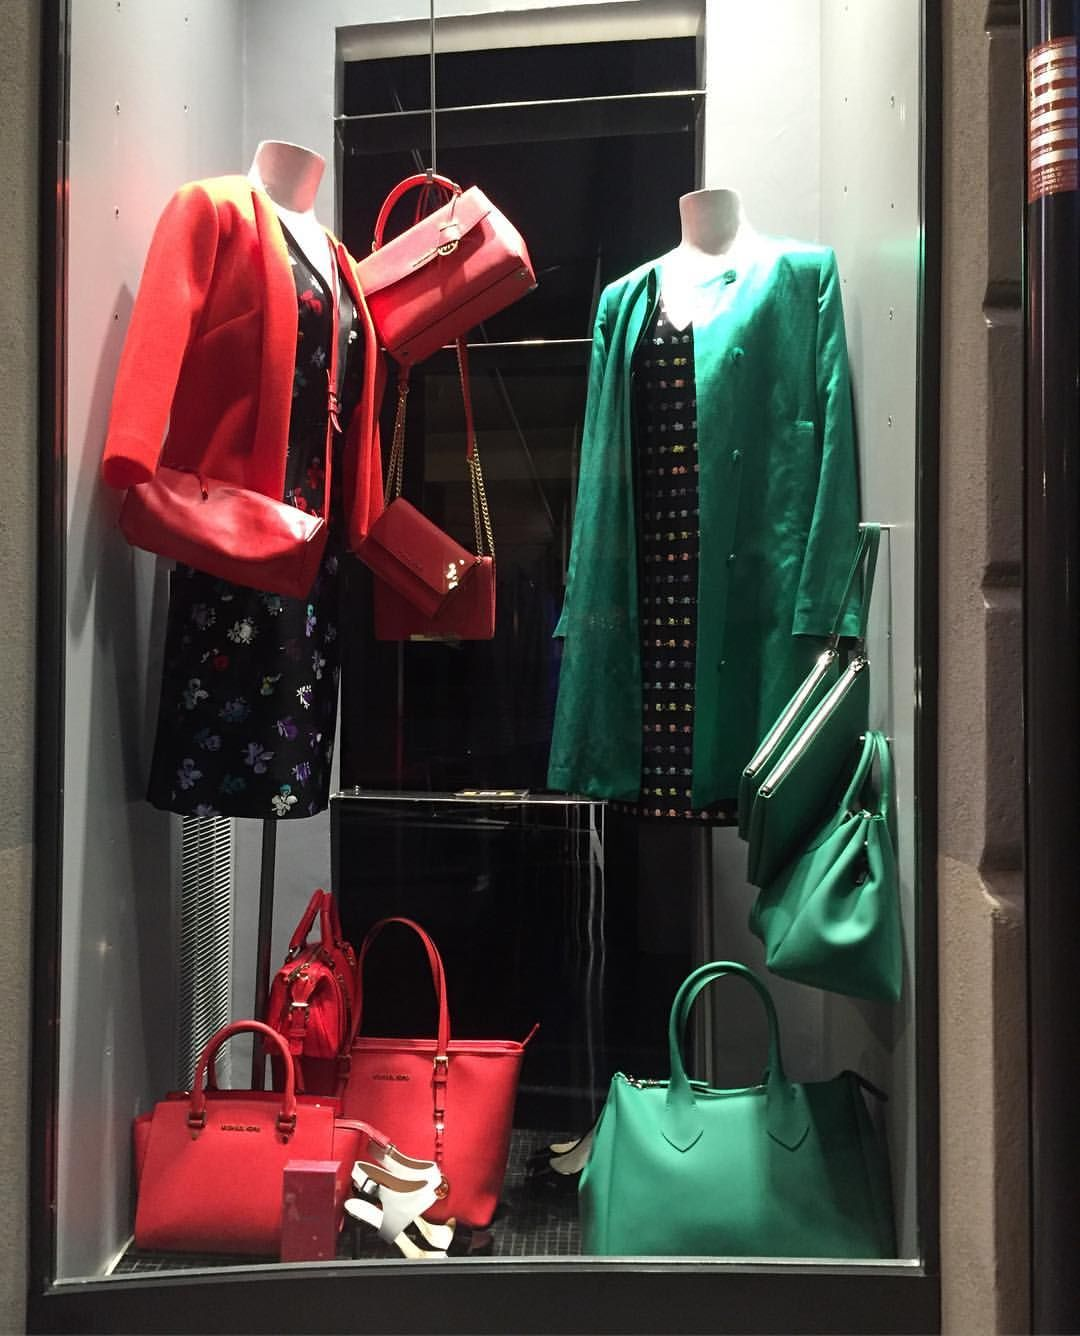 "Donne Vincenti su Instagram: ""Nero+colori !#newcollection #donnevincenti #Spring2016 #accessories #clothes #windowshop #newwindow #dress #bag #colors"""